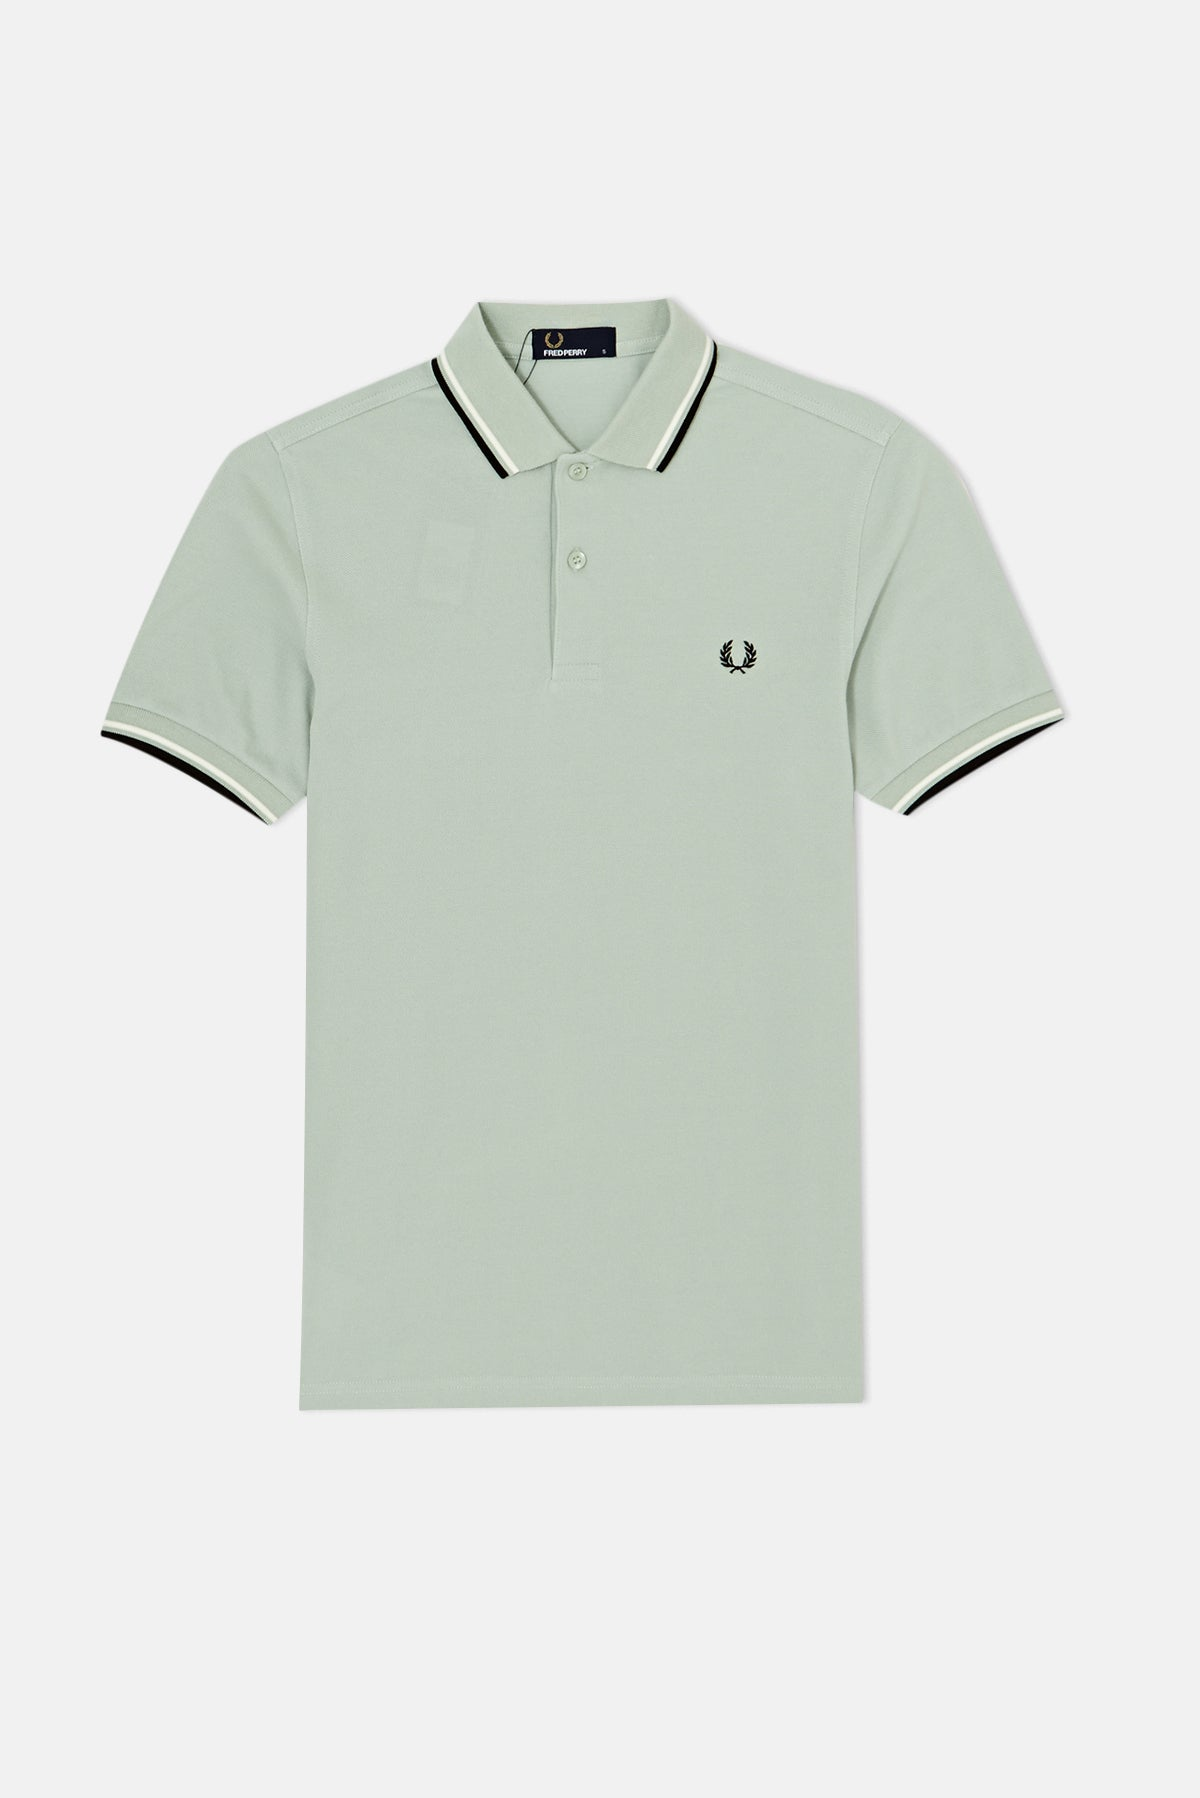 77bbd043d7c4 Fred Perry Twin Tipped Polo available from Priory